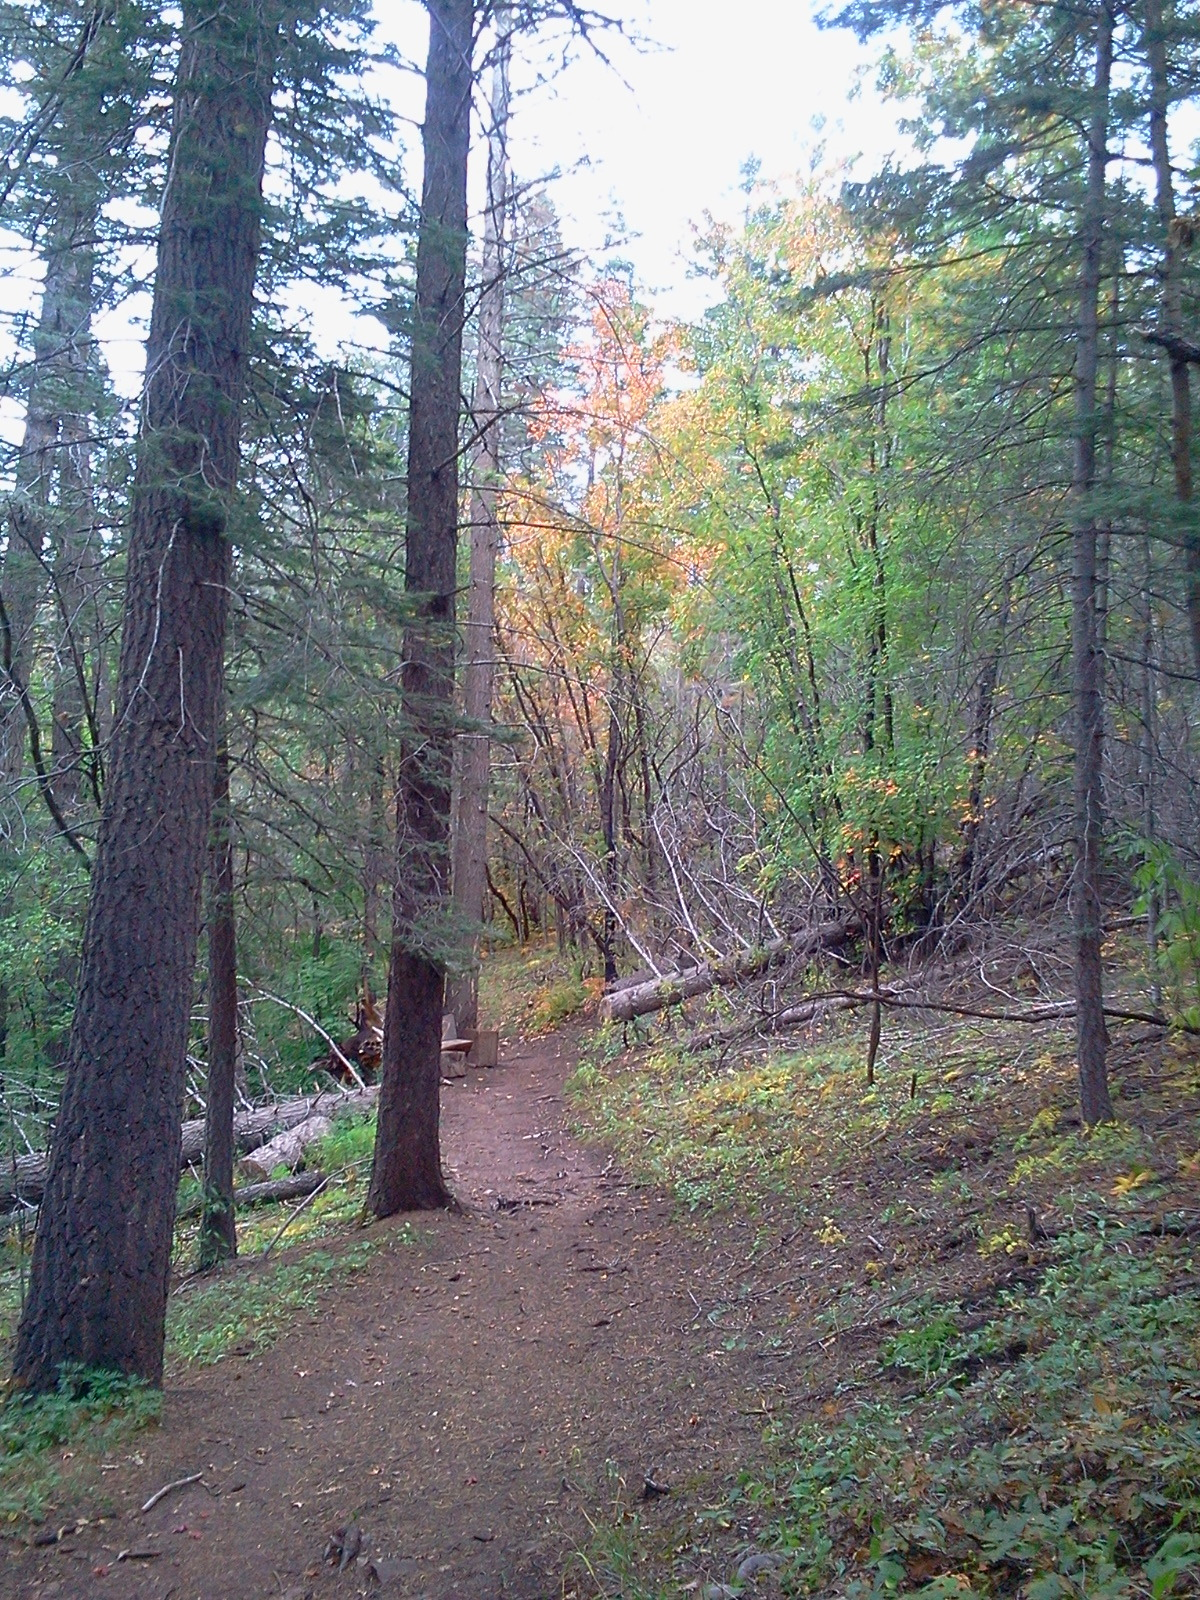 Trail outside of Cloudcroft, New Mexico.